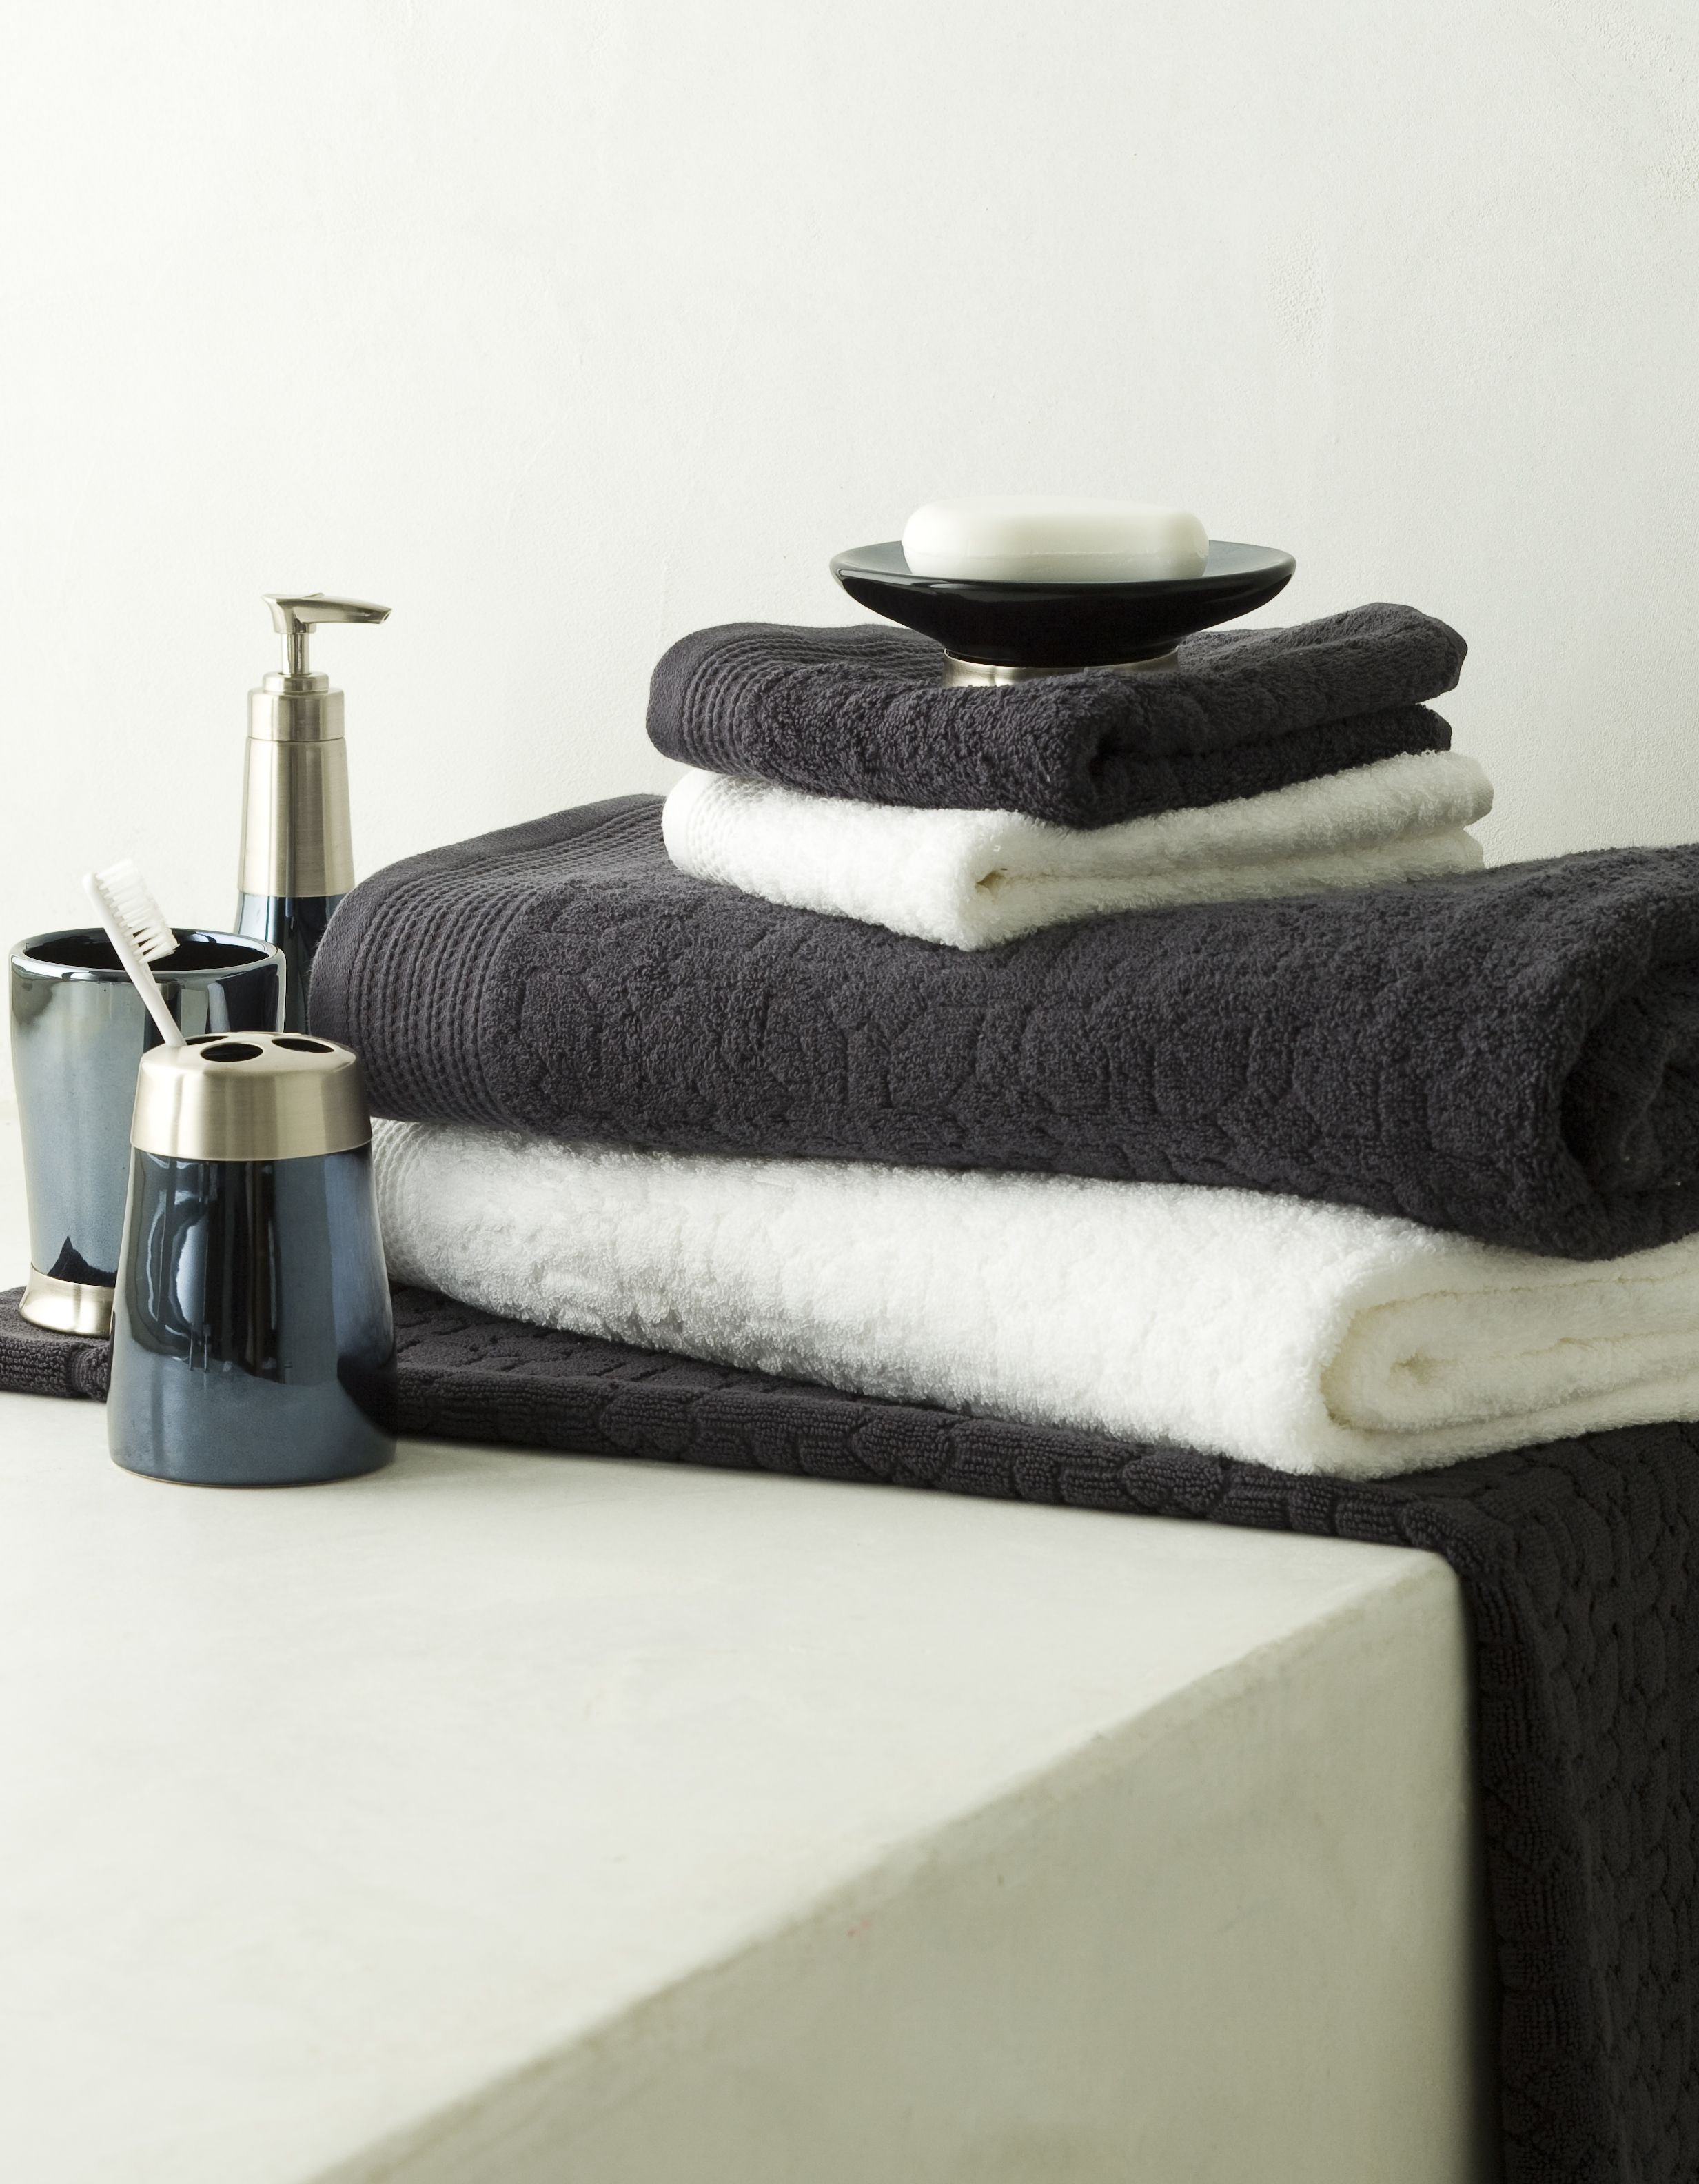 Coordinate your bathroom towels and accessories